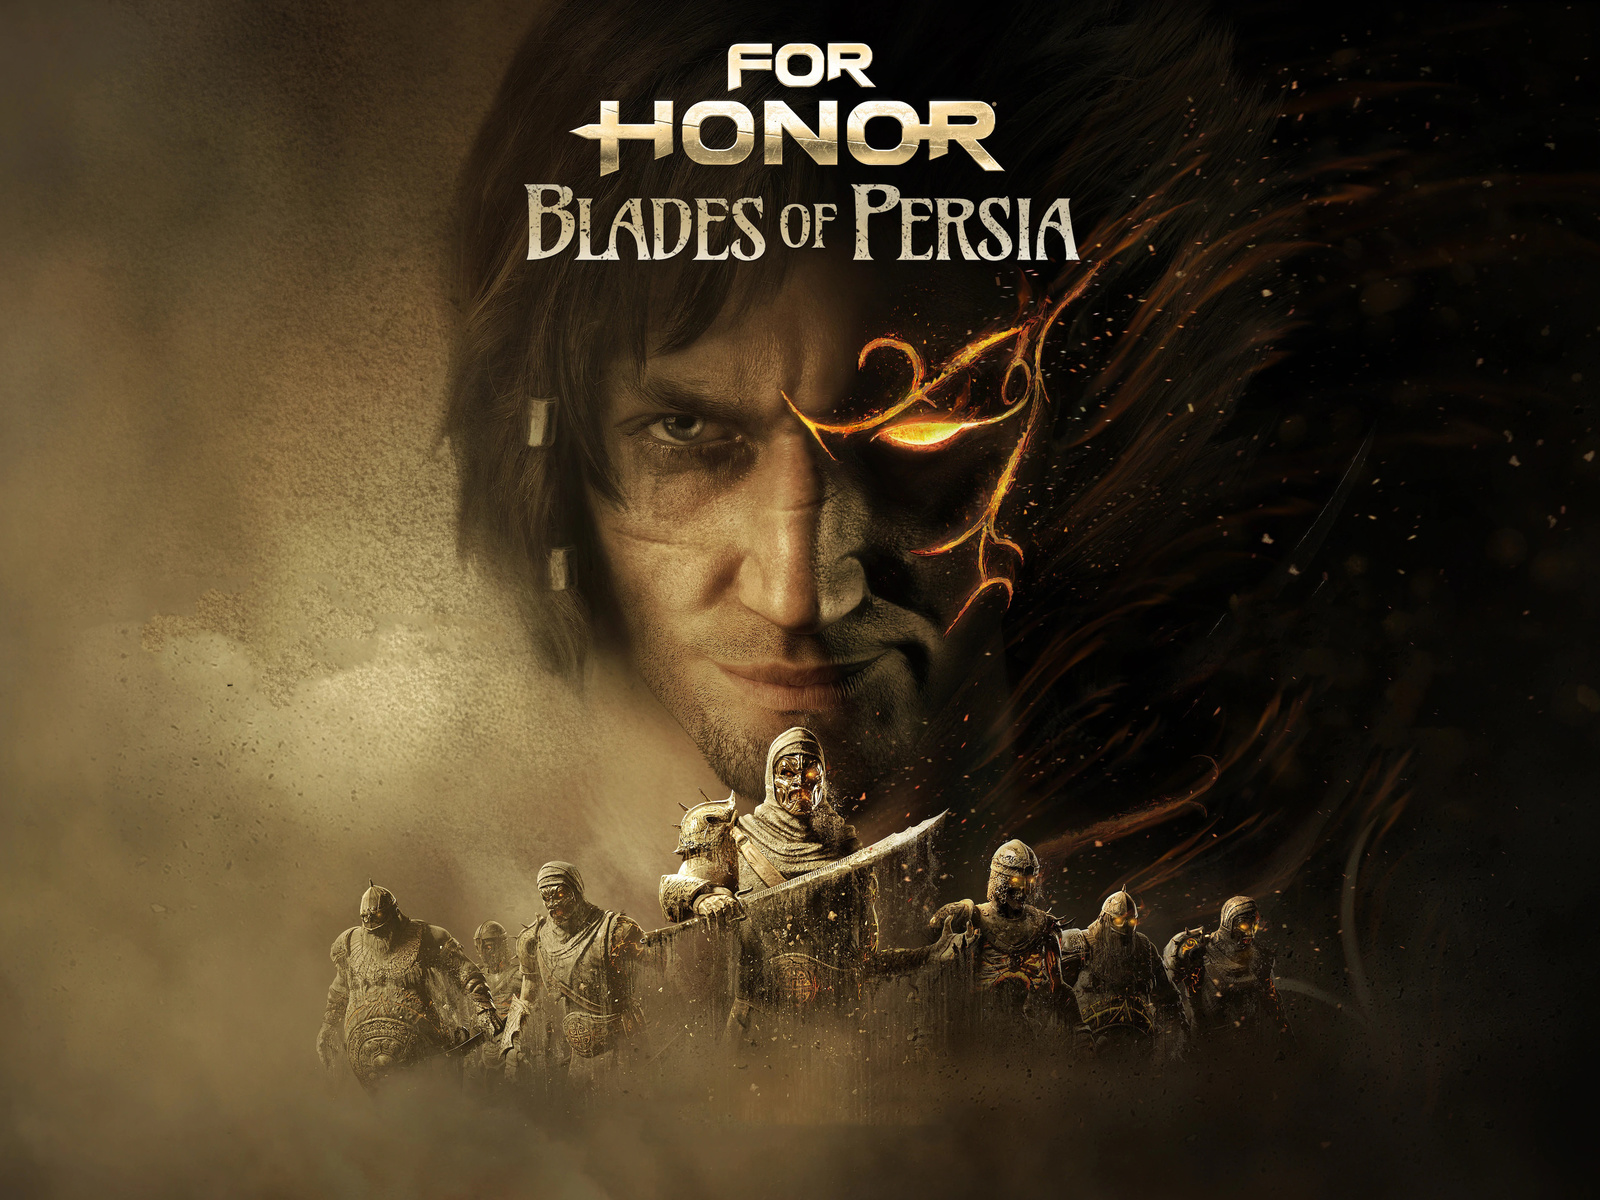 for honor, blades of persia, games